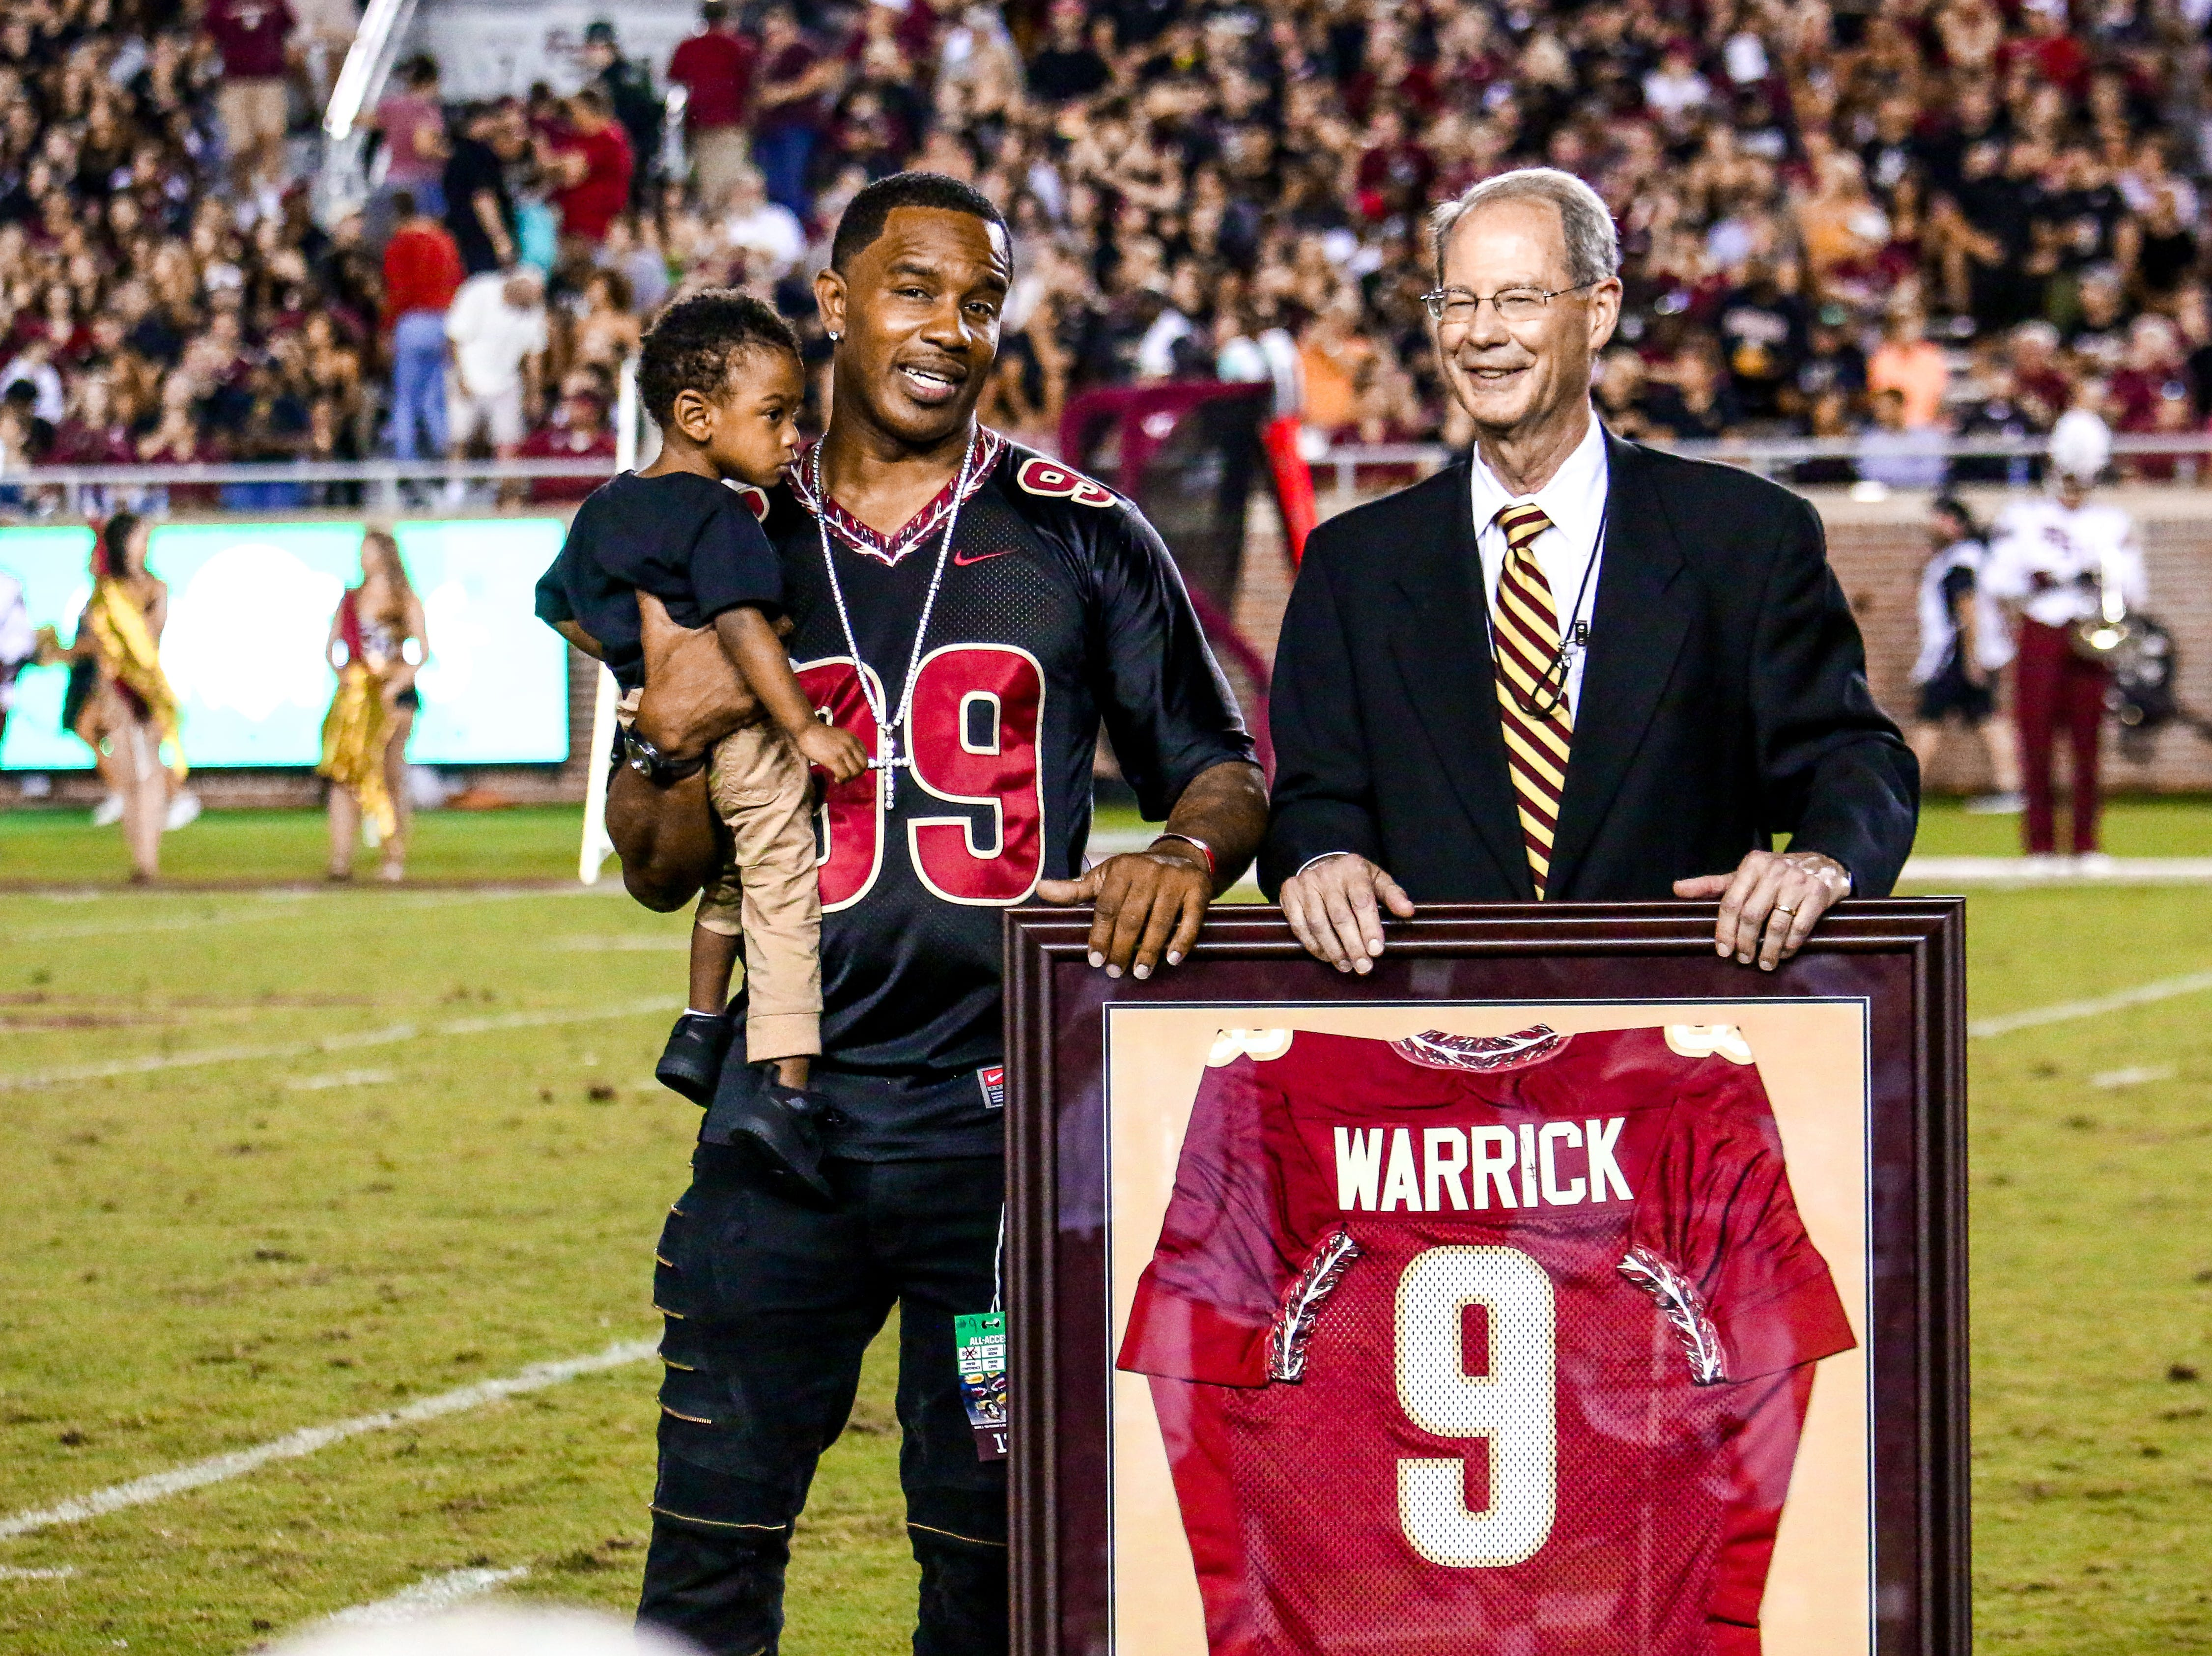 At halftime against Virginia Tech, Legendary FSU Wide Receiver, Peter Warrick, had his infamous #9 jersey retired. Warrick had an exceptional career at FSU and would eventually take his talents to the NFL. Fans erupted in celebration, commemorating the legacy he left at FSU.